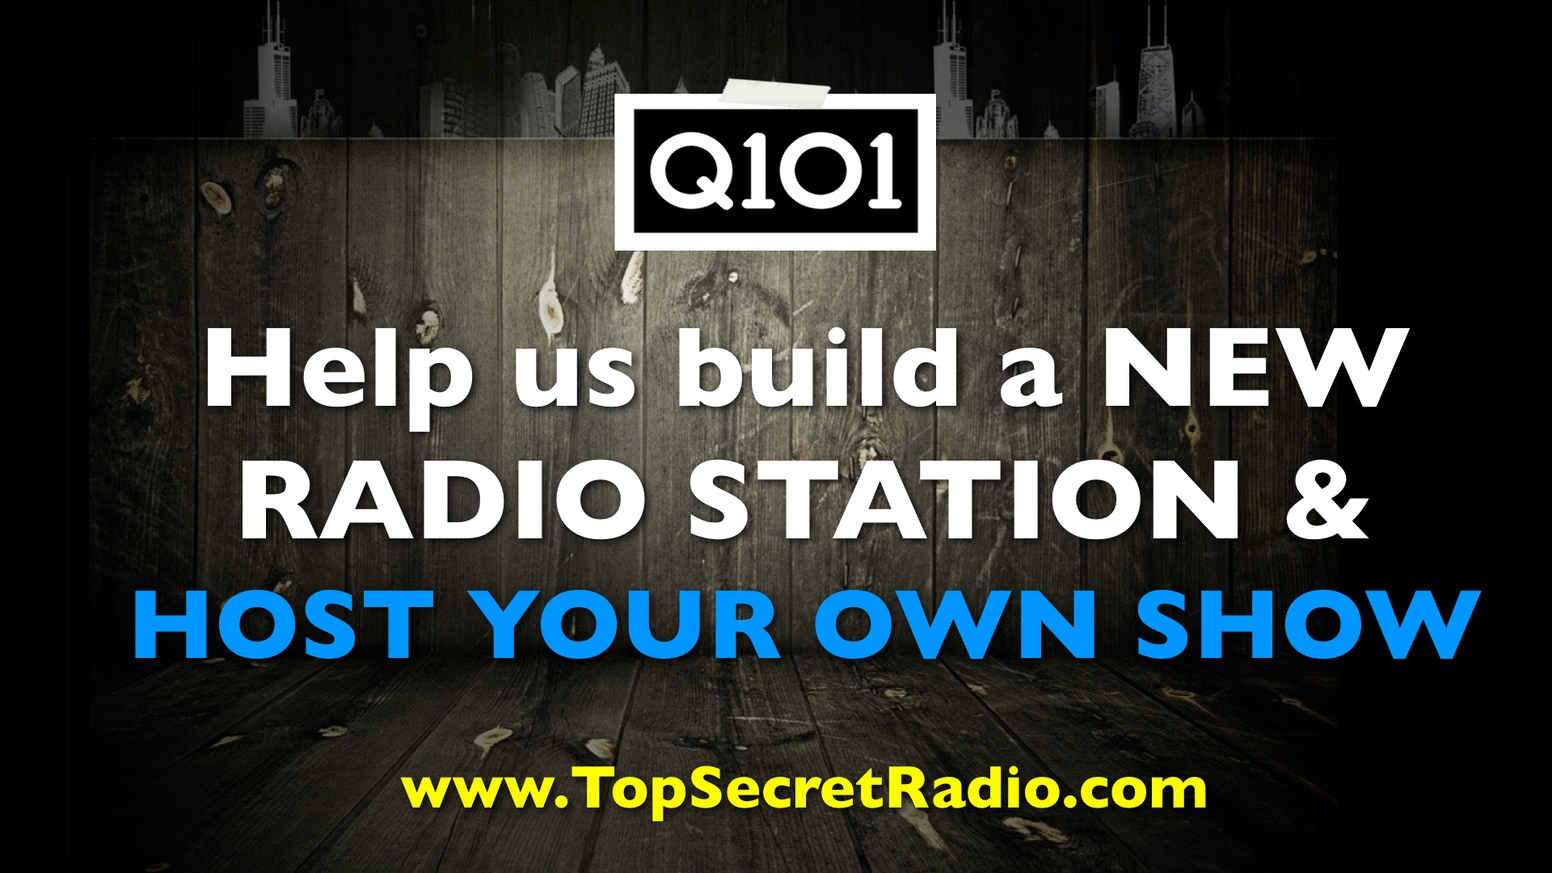 Q101 Chicago New Fan Generated Radio Station By Kickstarter Building A Is Brand From Scratch And We Want To You